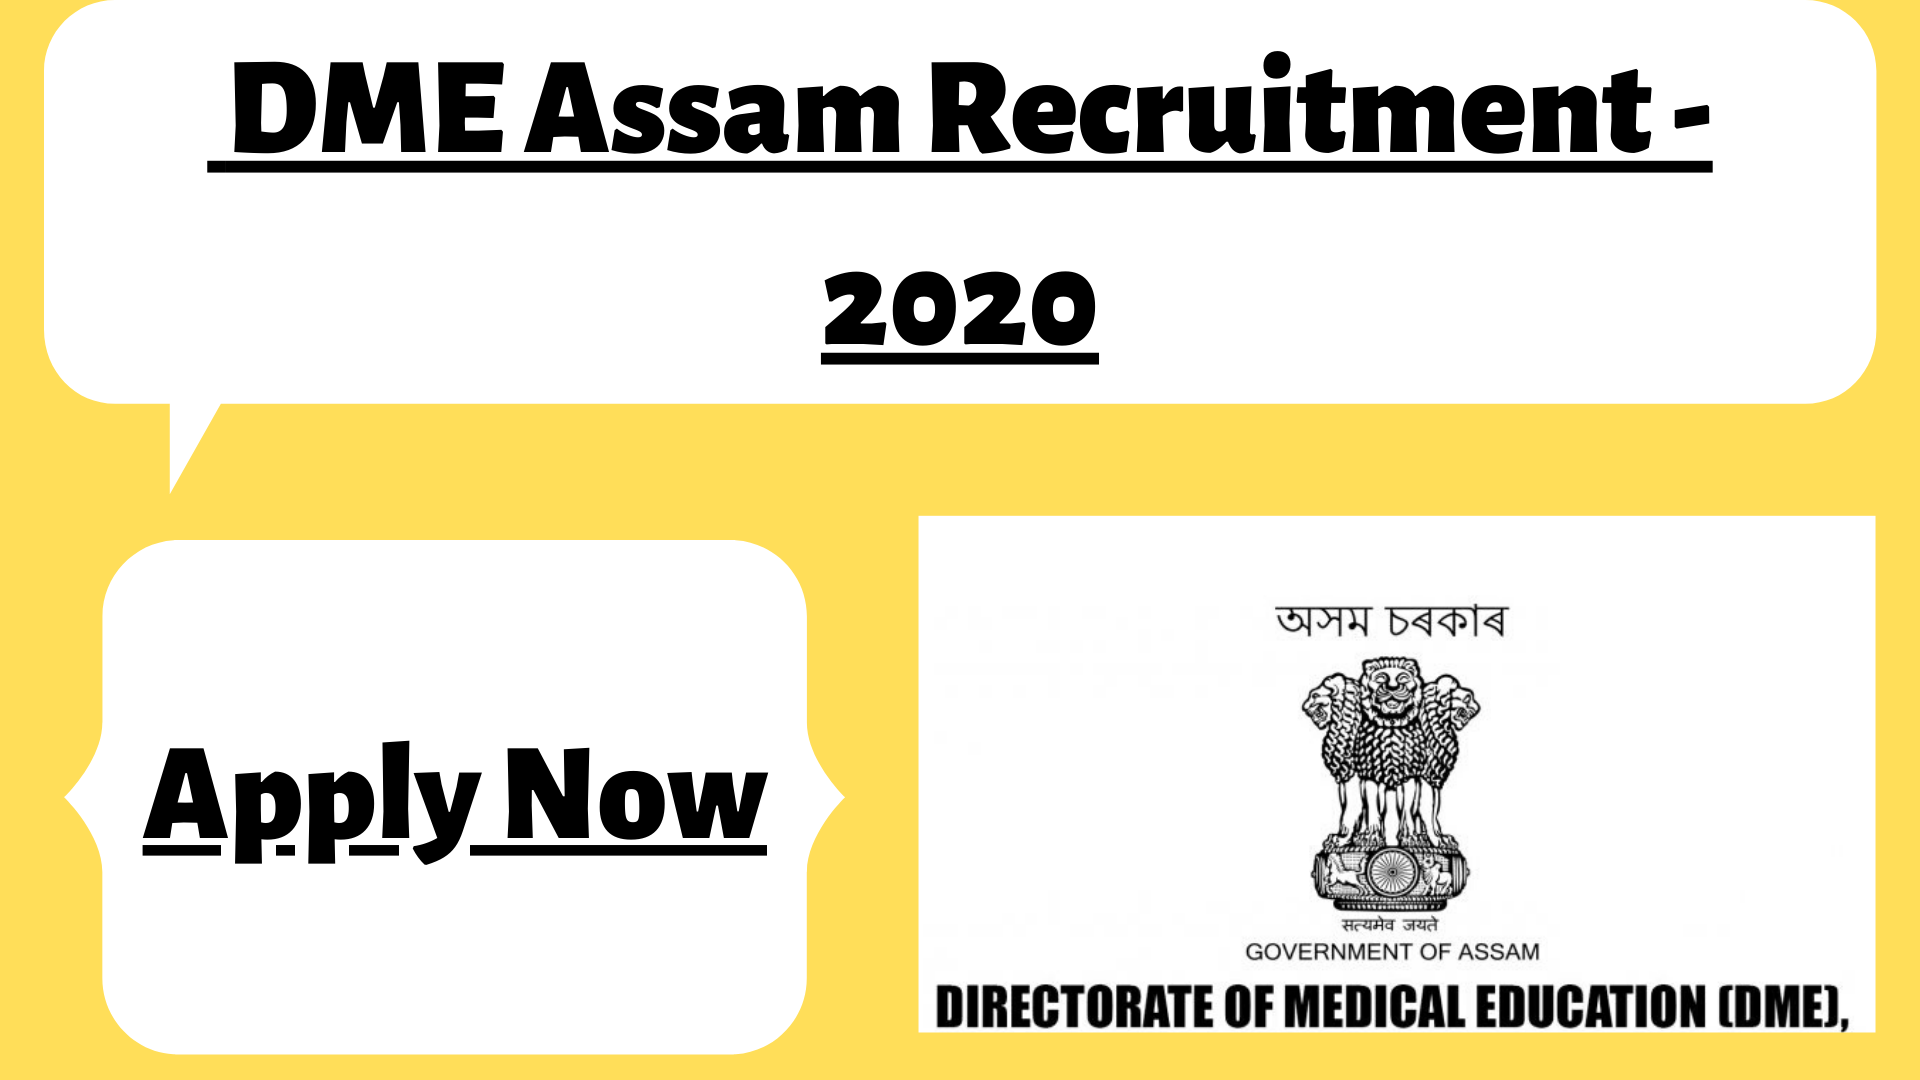 Pin by My Smart New on Govt Job Vacancy in 2020 Medical